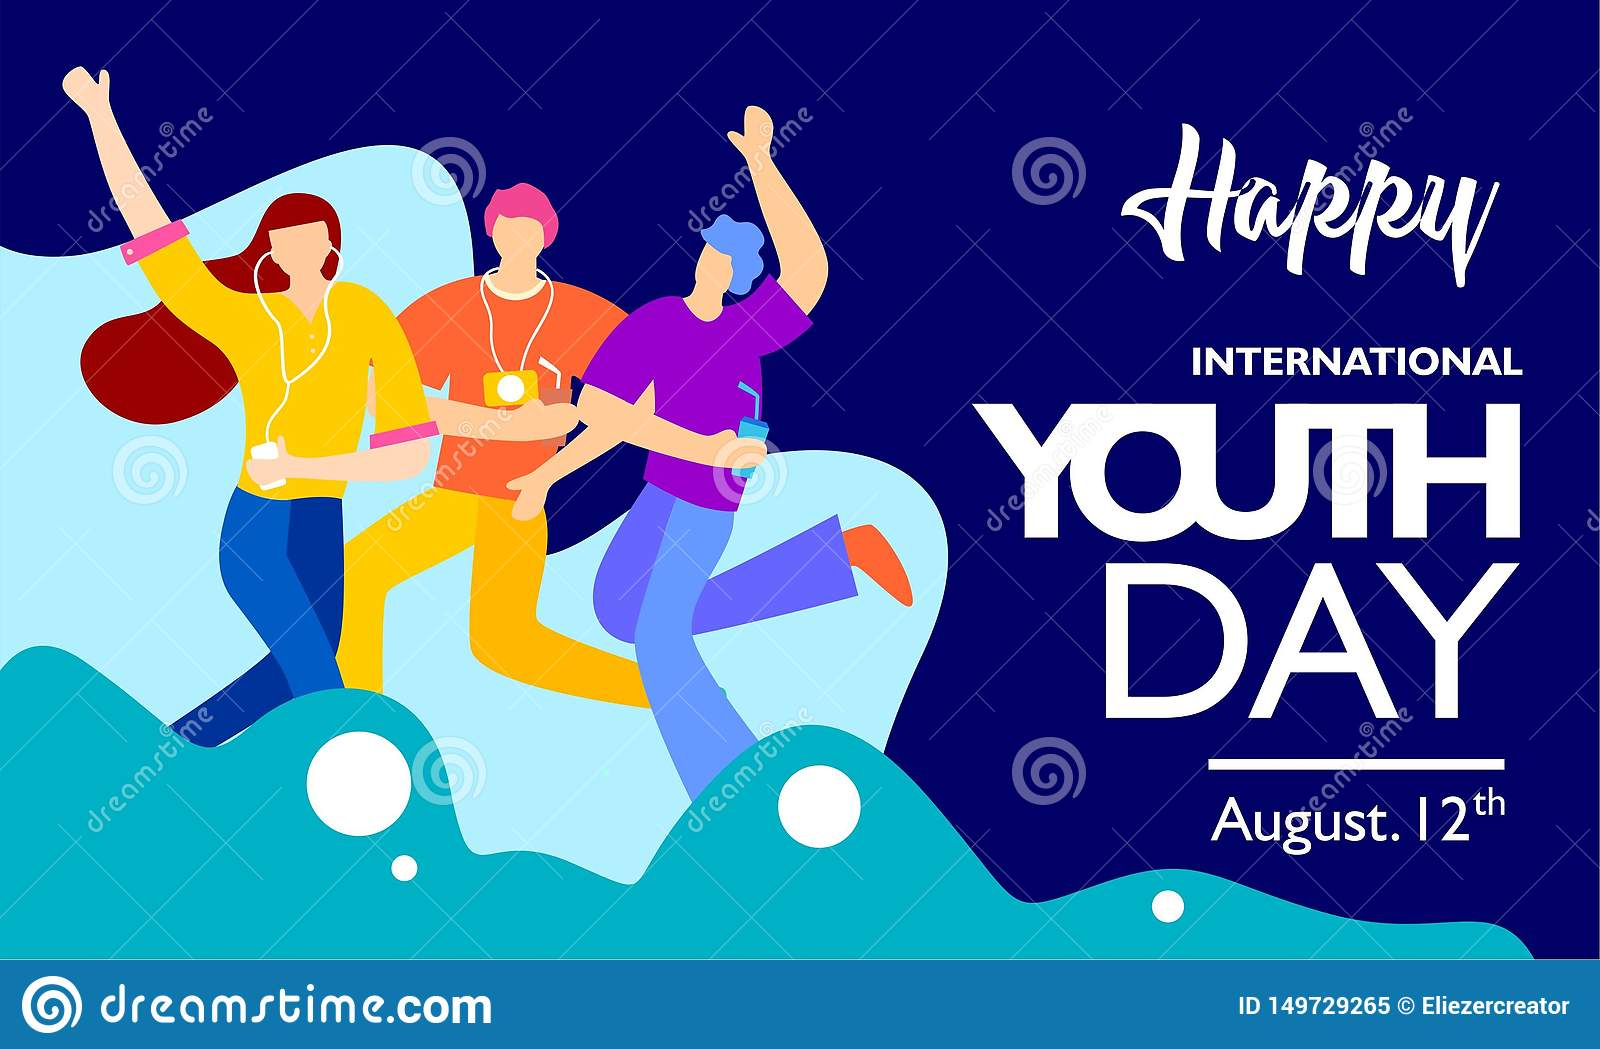 International youth day, August 12 th. with active and passionate young people illustration. on blue wave shape and blue backgroun